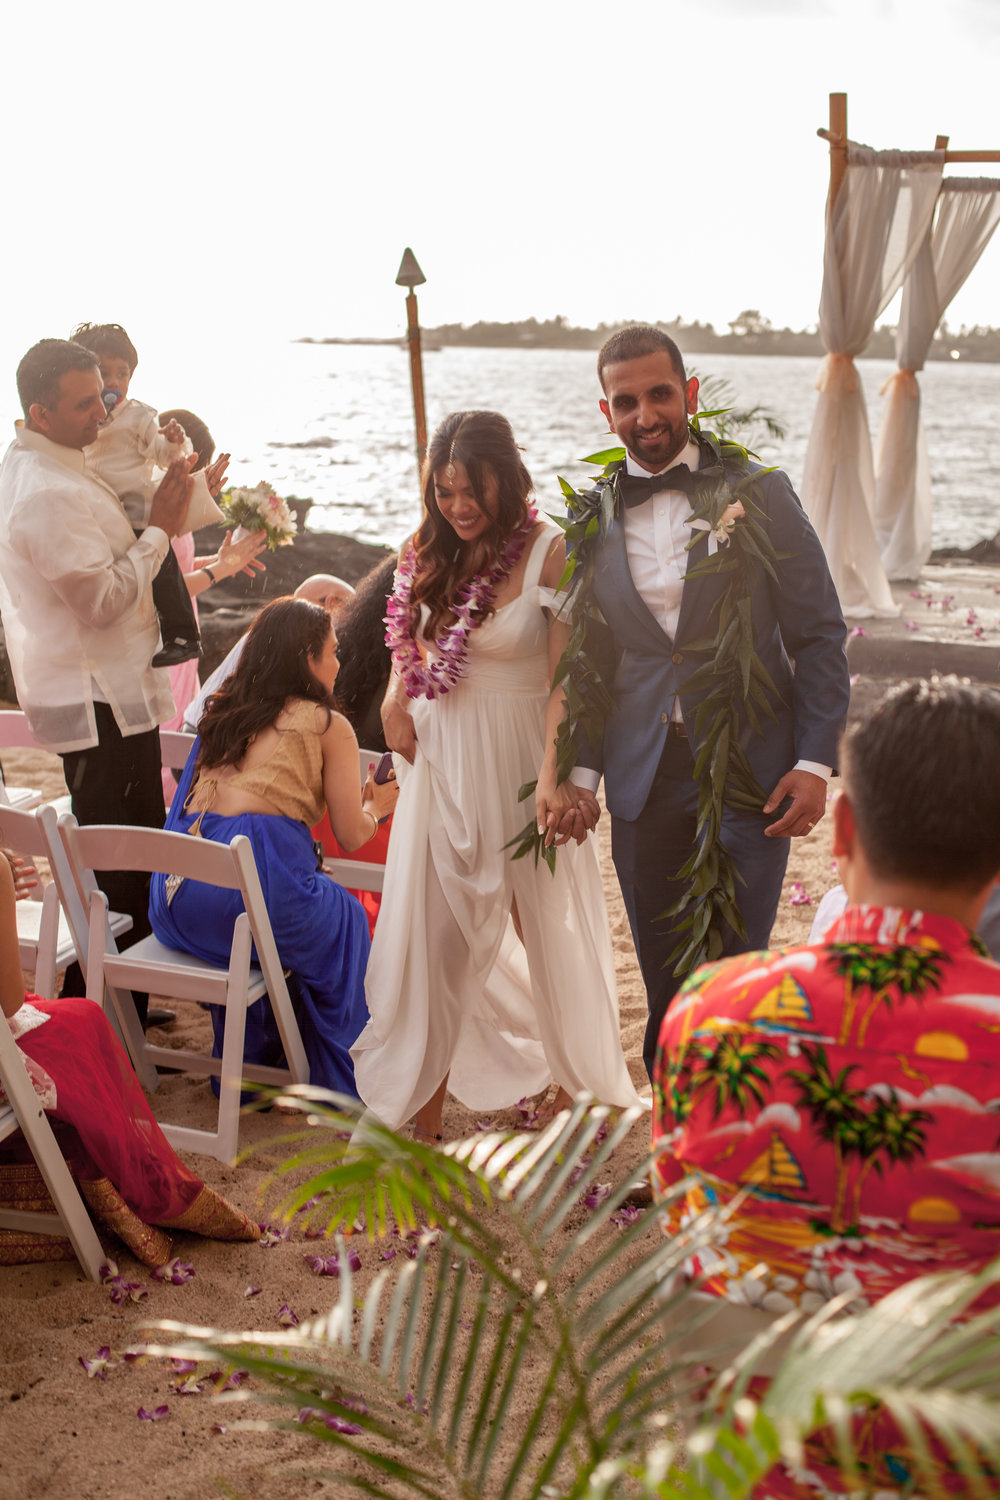 big island hawaii royal kona resort beach wedding © kelilina photography 20170615180326.jpg